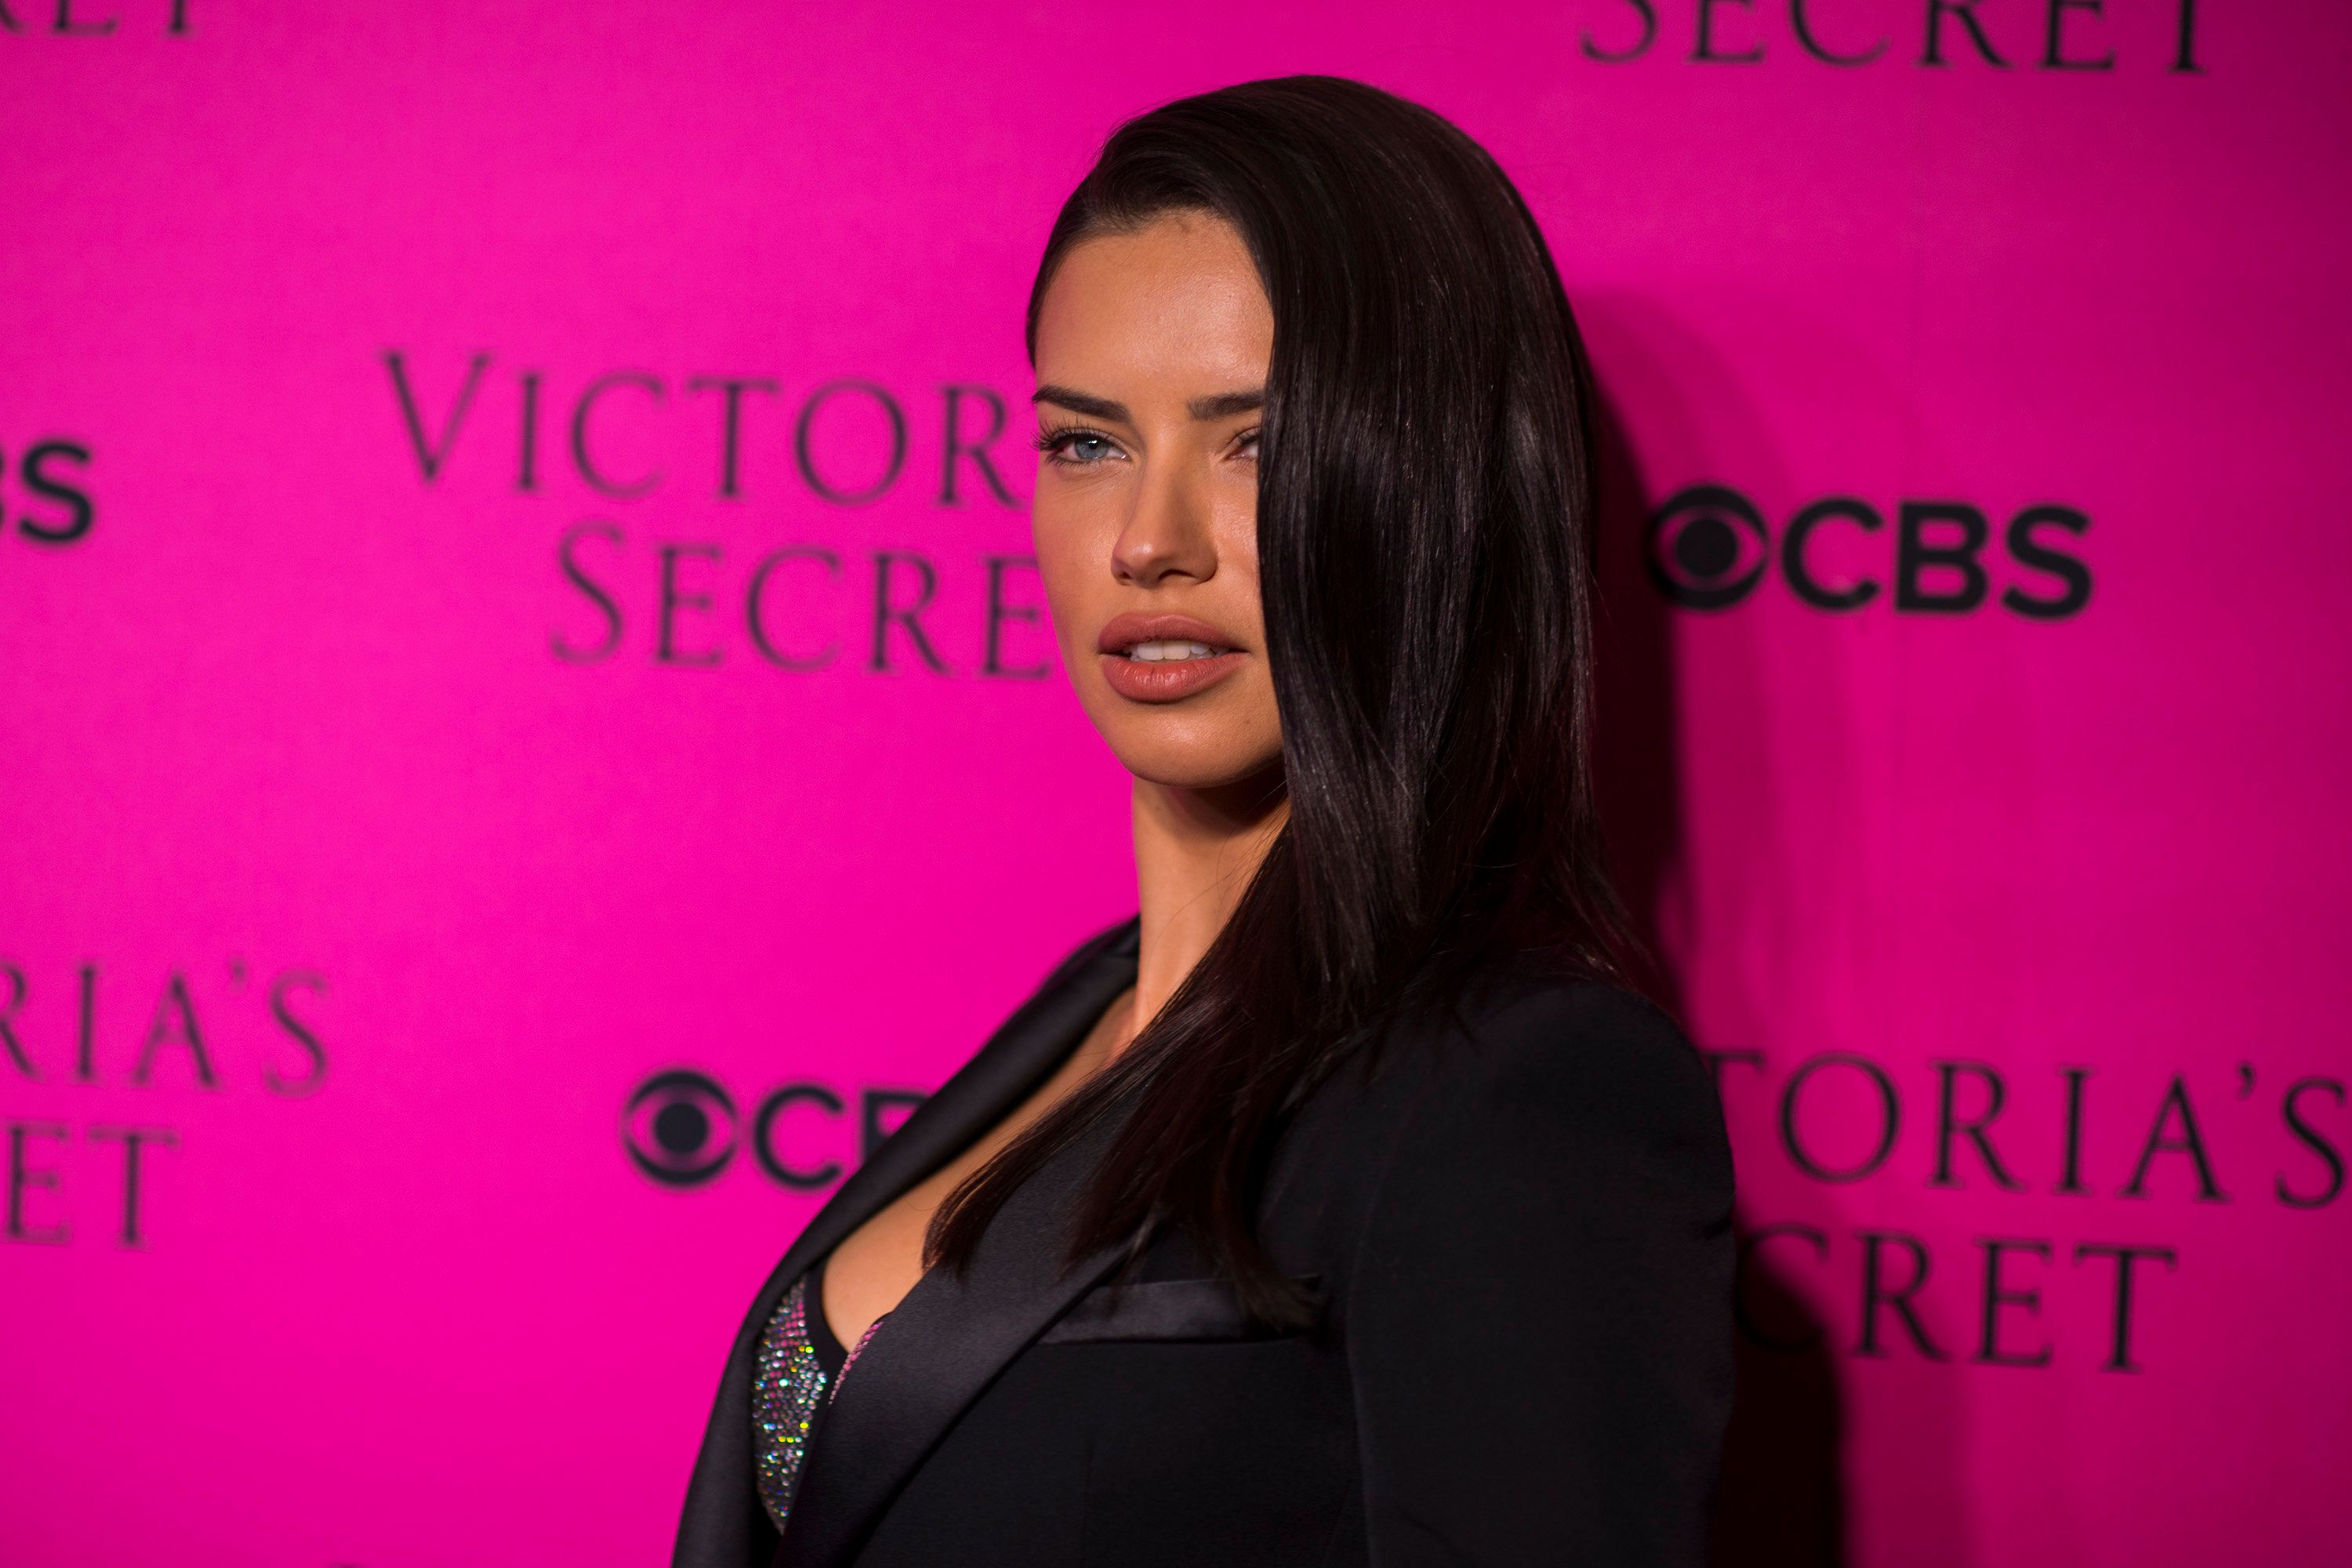 NEW YORK, NY - NOVEMBER 28:  Adriana Lima attends the 2017 Victoria's Secret Fashion Show viewing party pink carpet at Spring Studios on November 28, 2017 in New York City.  (Photo by Michael Stewart/WireImage)